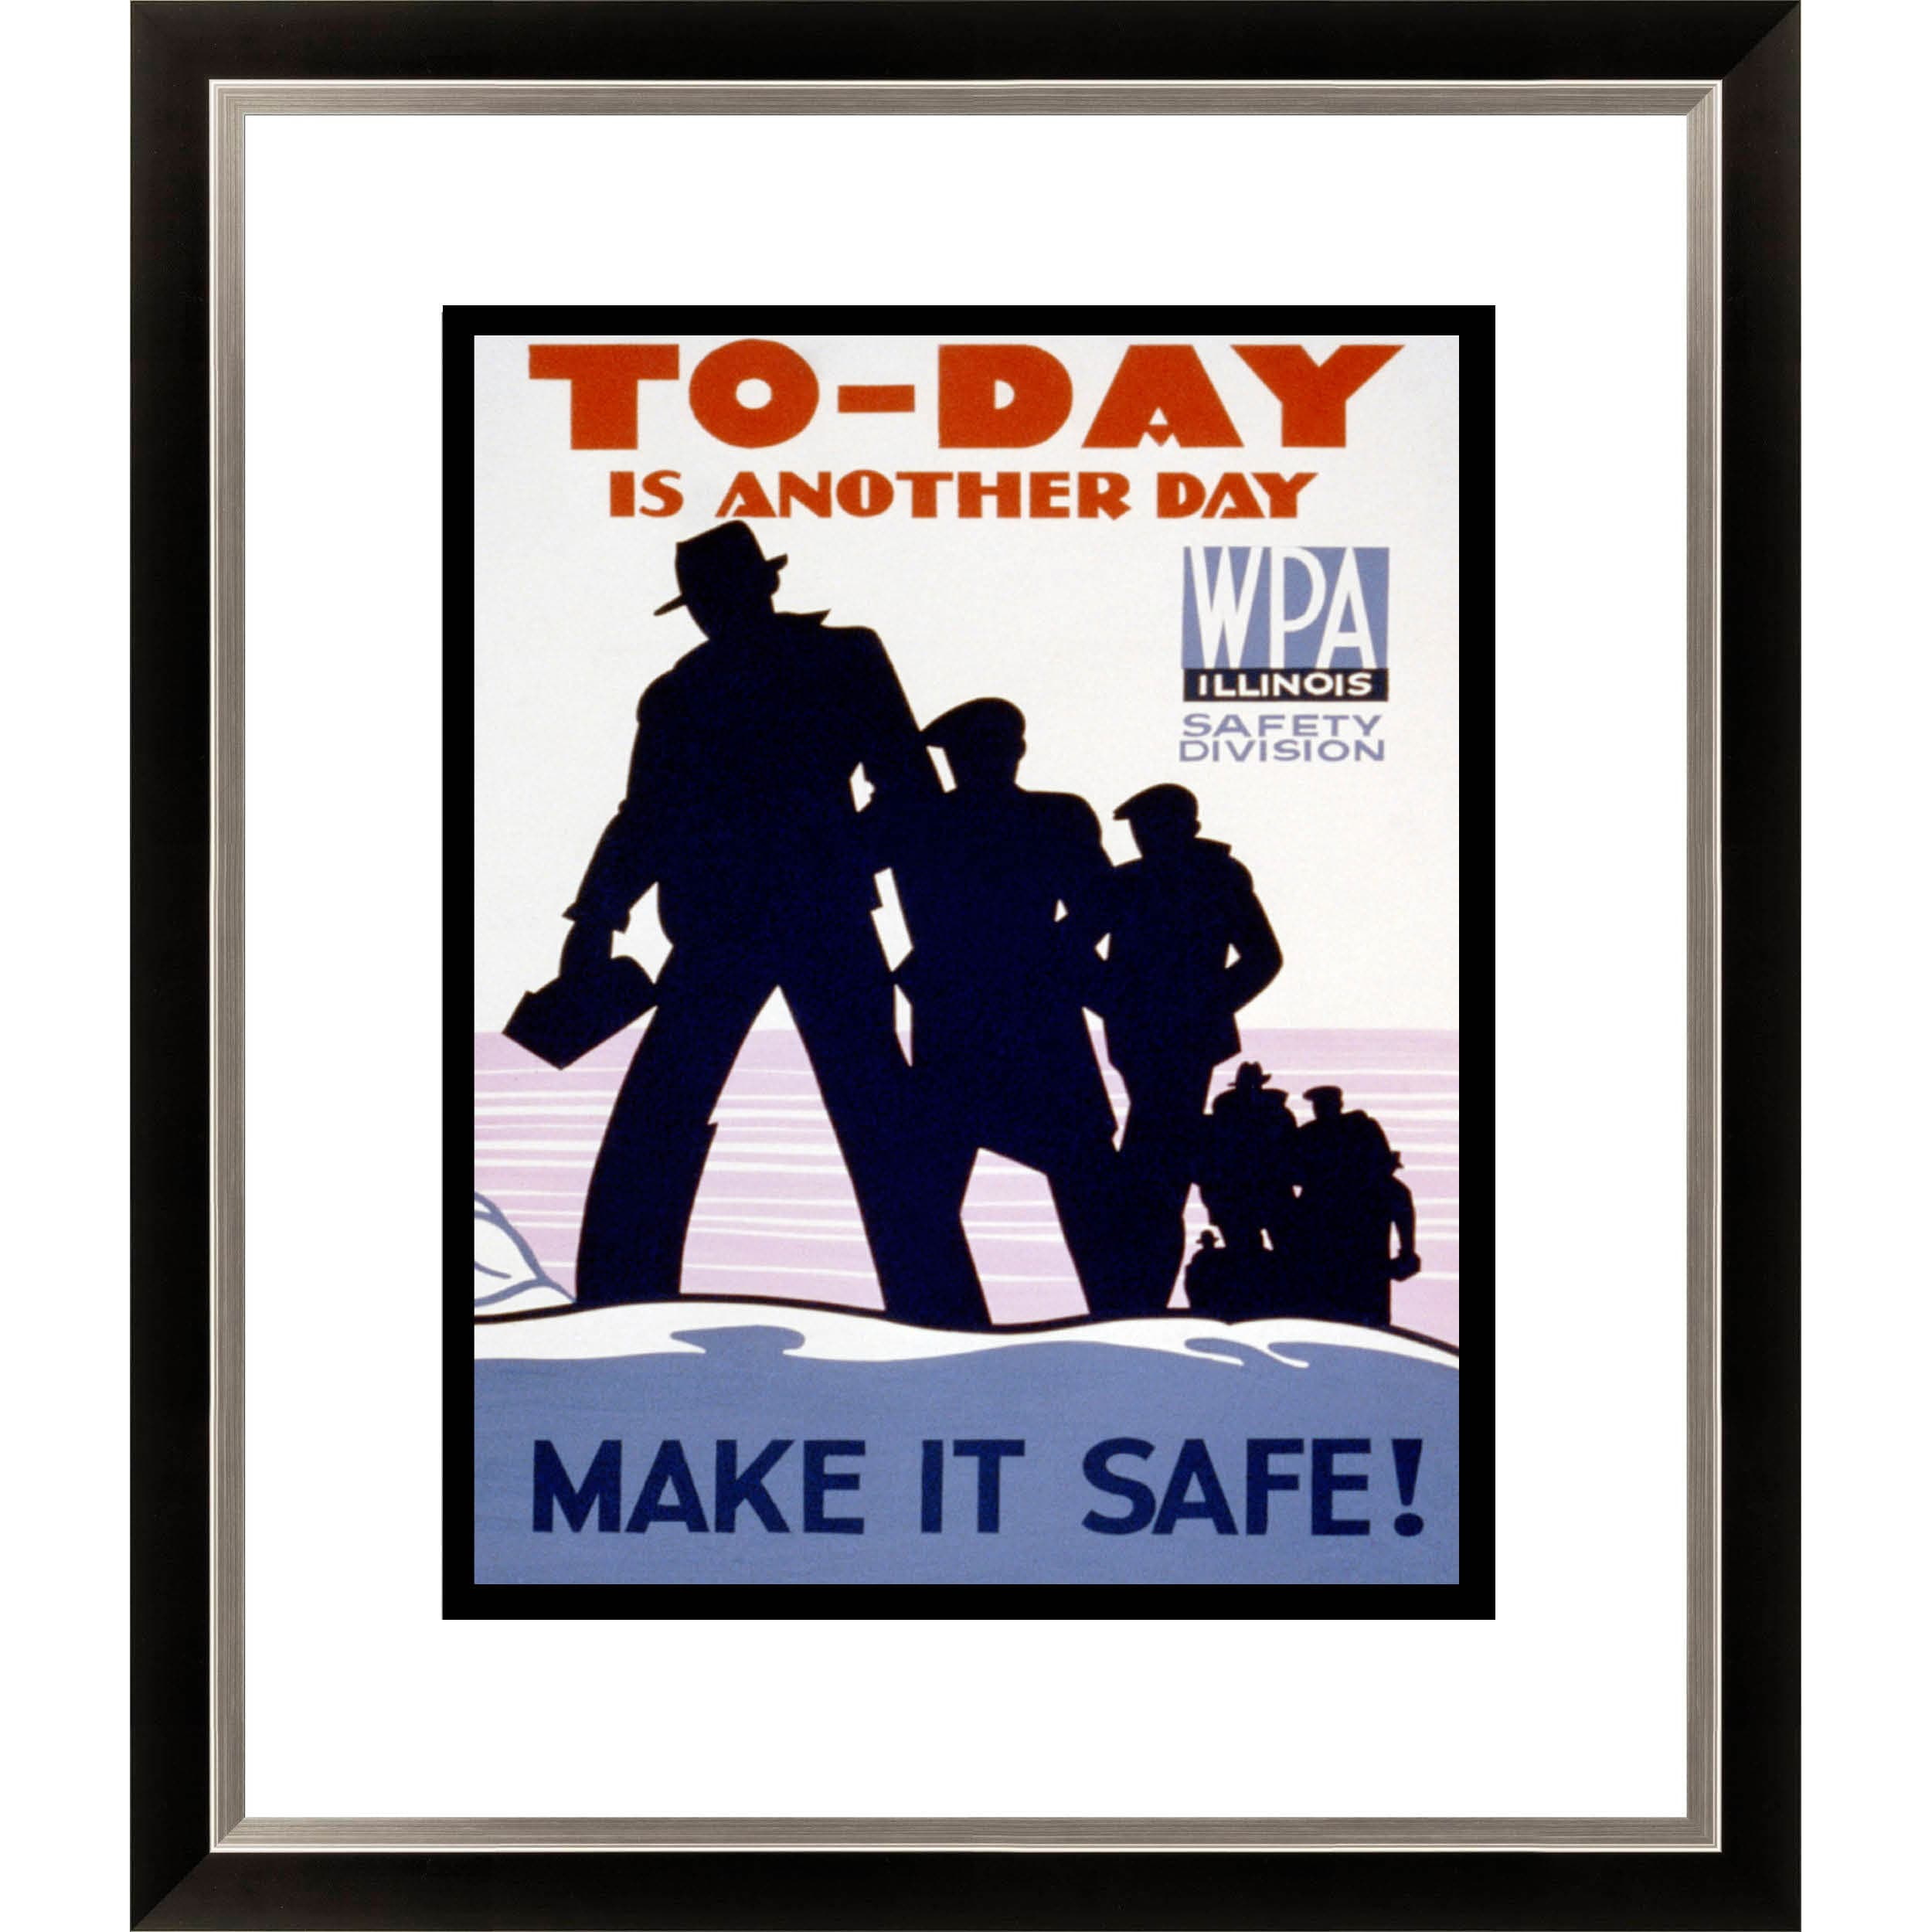 To-day is Another Day Make it Safe! Framed Limited Edition Giclee Art